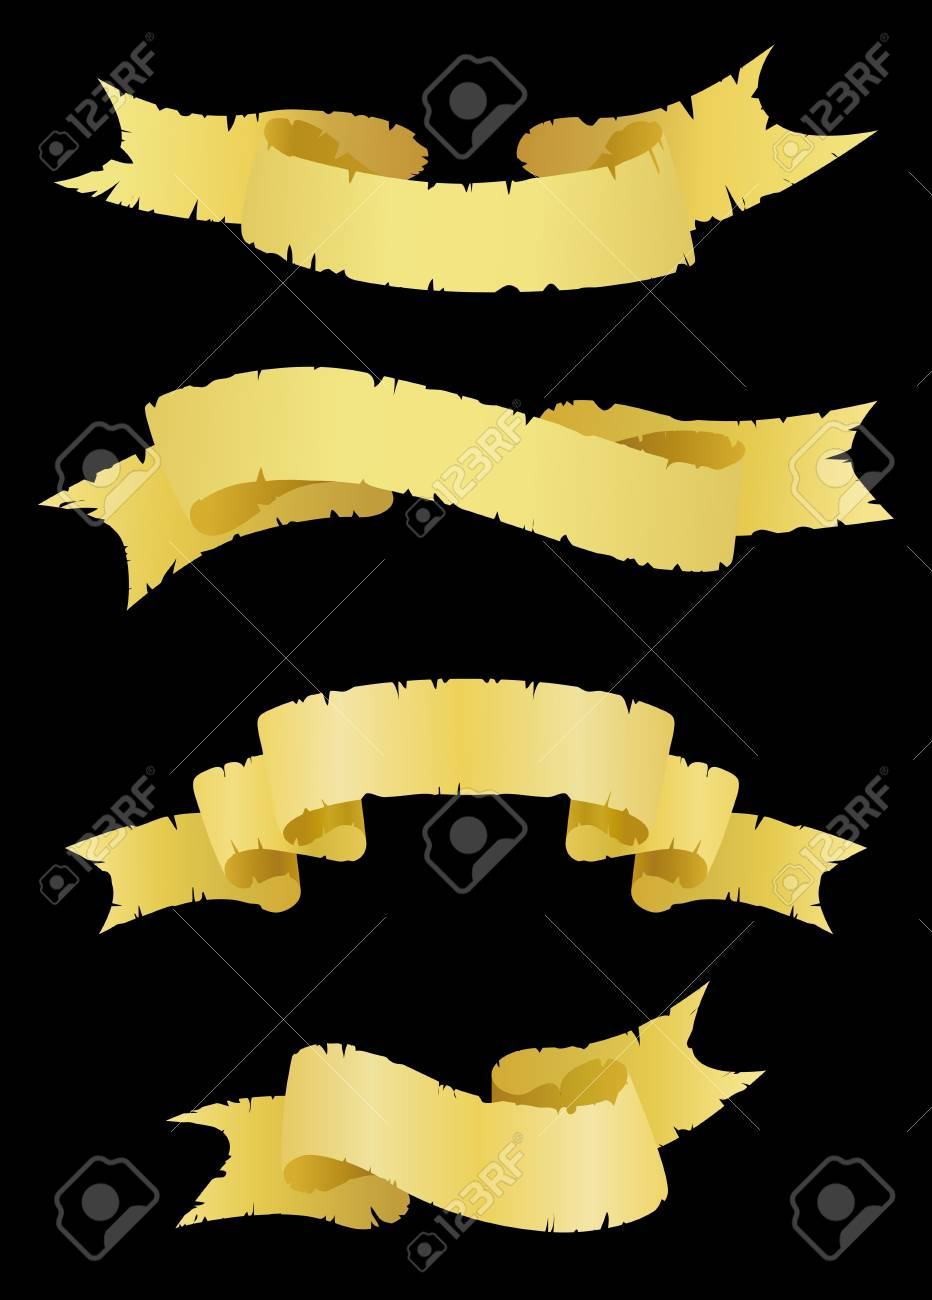 Old ribbons as a banners isolated on background Stock Vector - 7544254